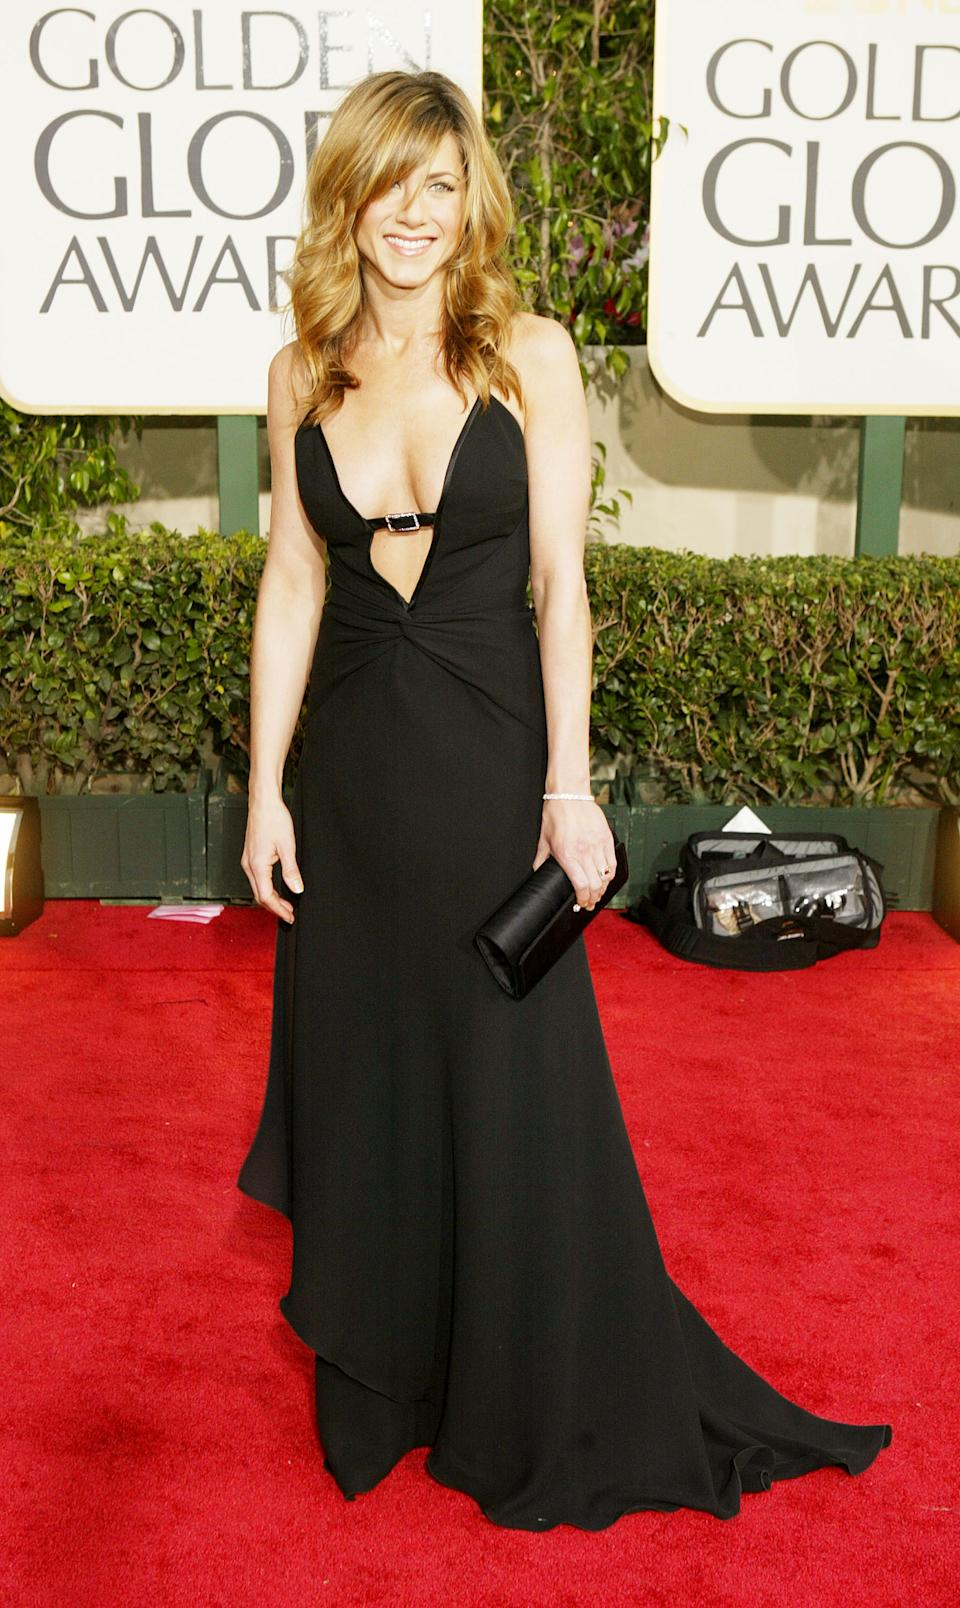 A strategically placed buckle added an edge to Aniston's black gown at the 2004 Golden Globe Awards (Photo by Carlo Allegri/Getty Images)